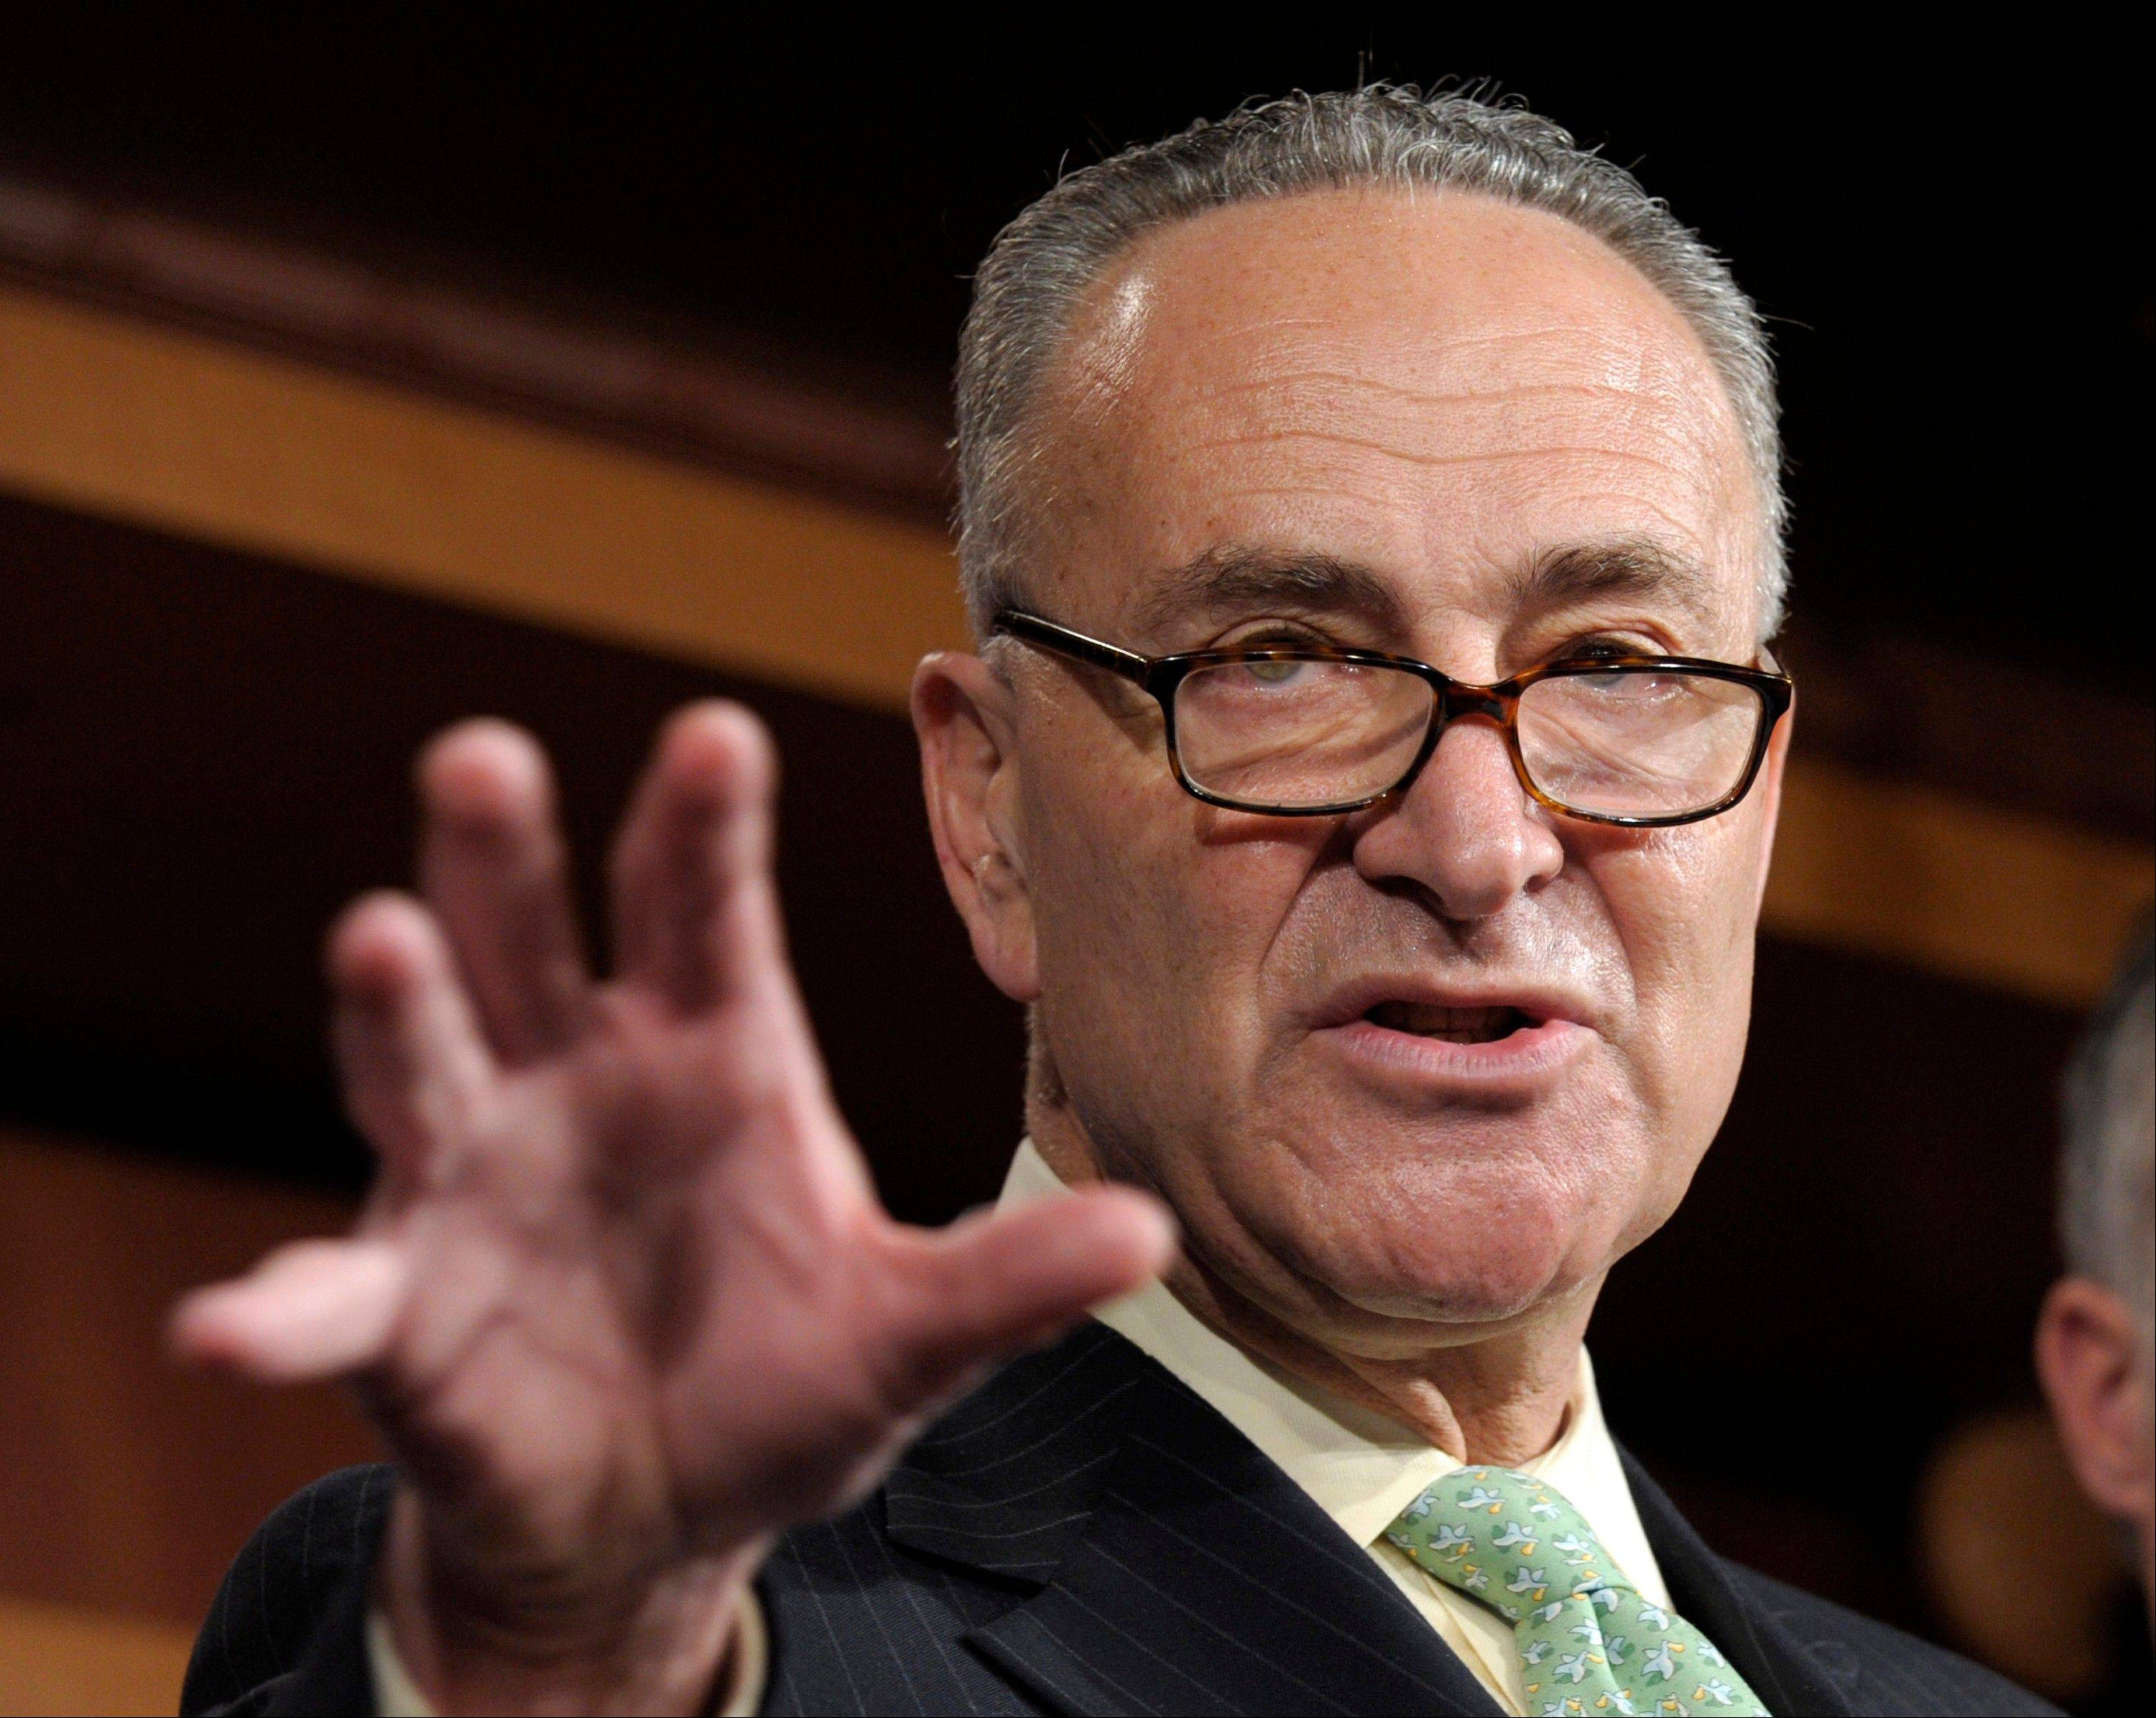 New York Democratic Sen. Charles Schumer